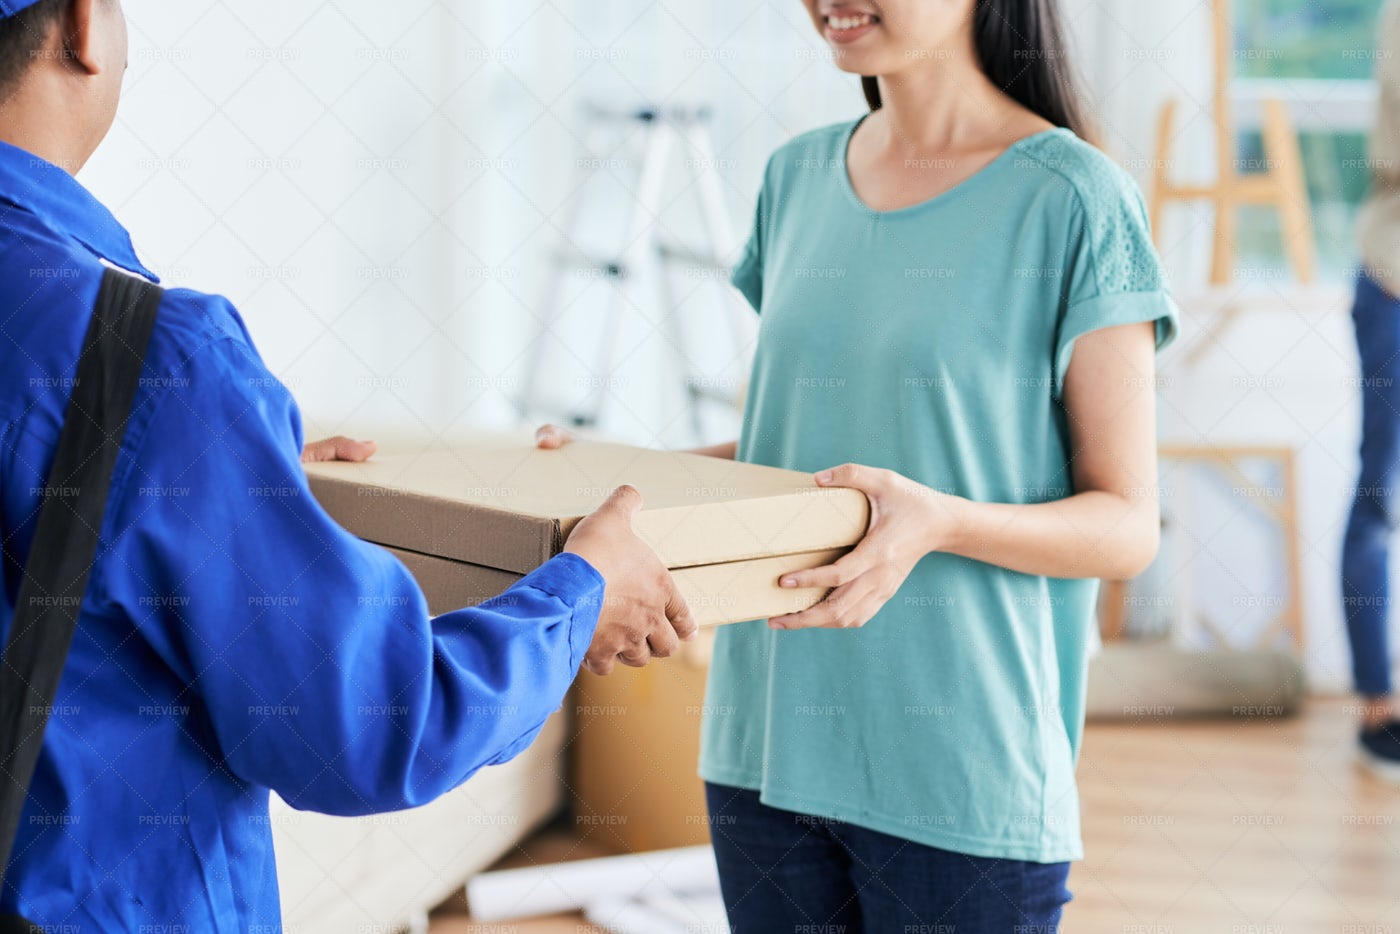 Smiling Woman Taking Pizza From...: Stock Photos